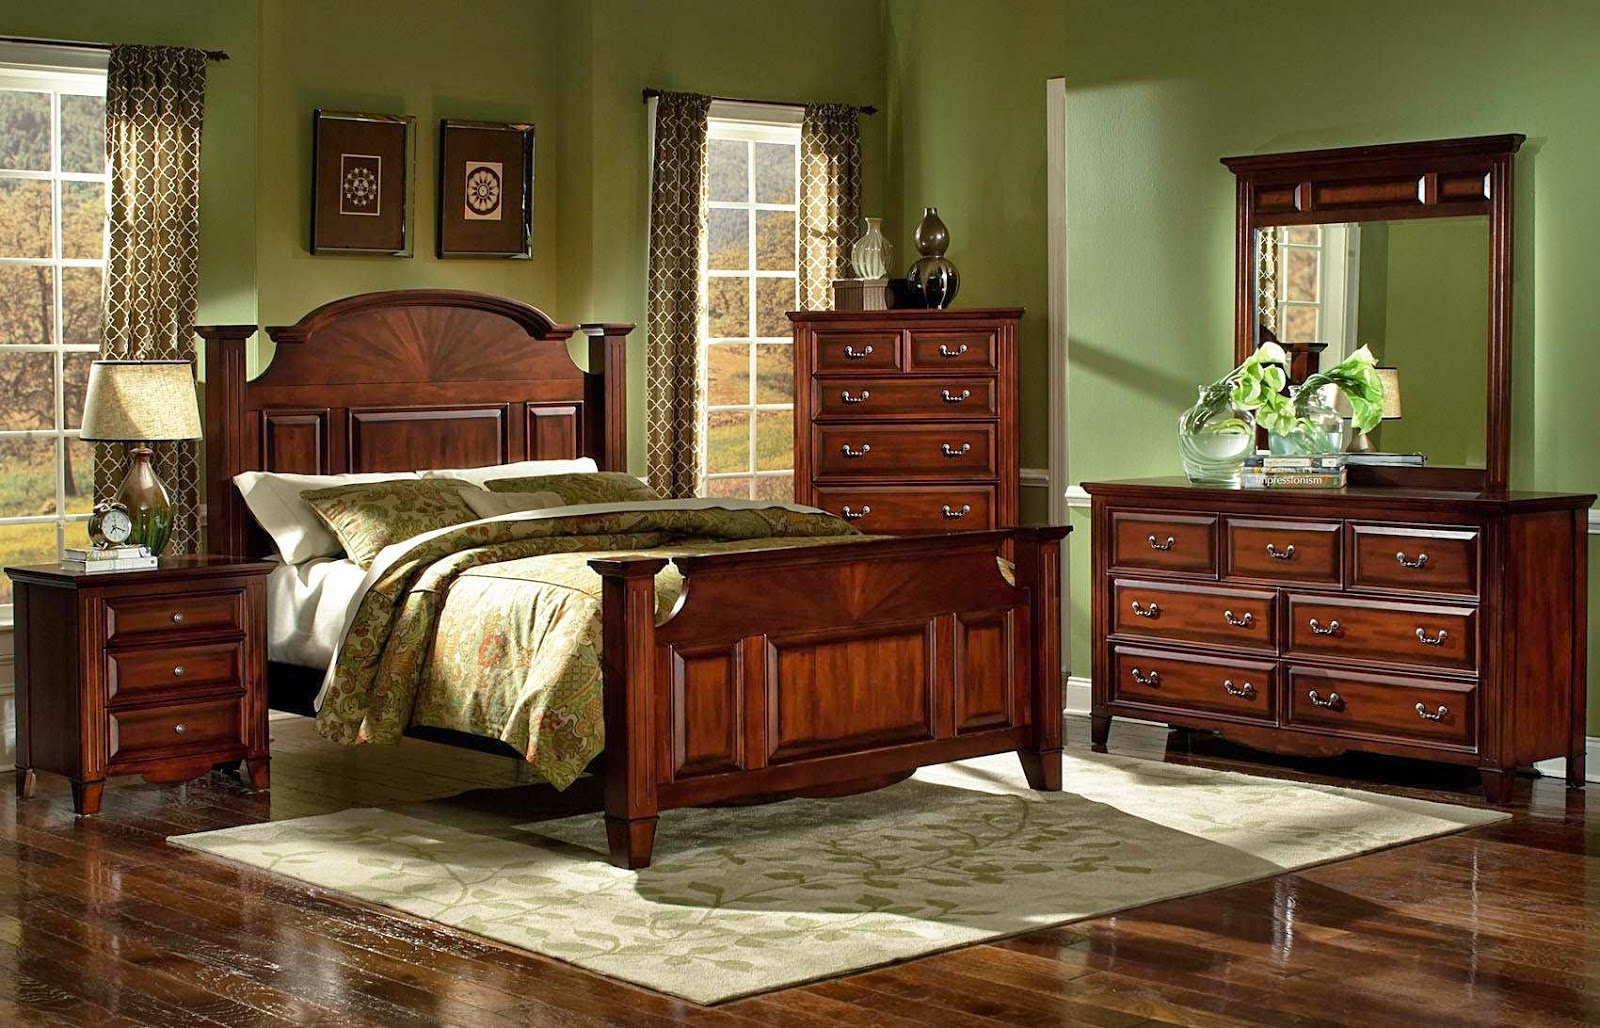 Mirror bedroom furniture set